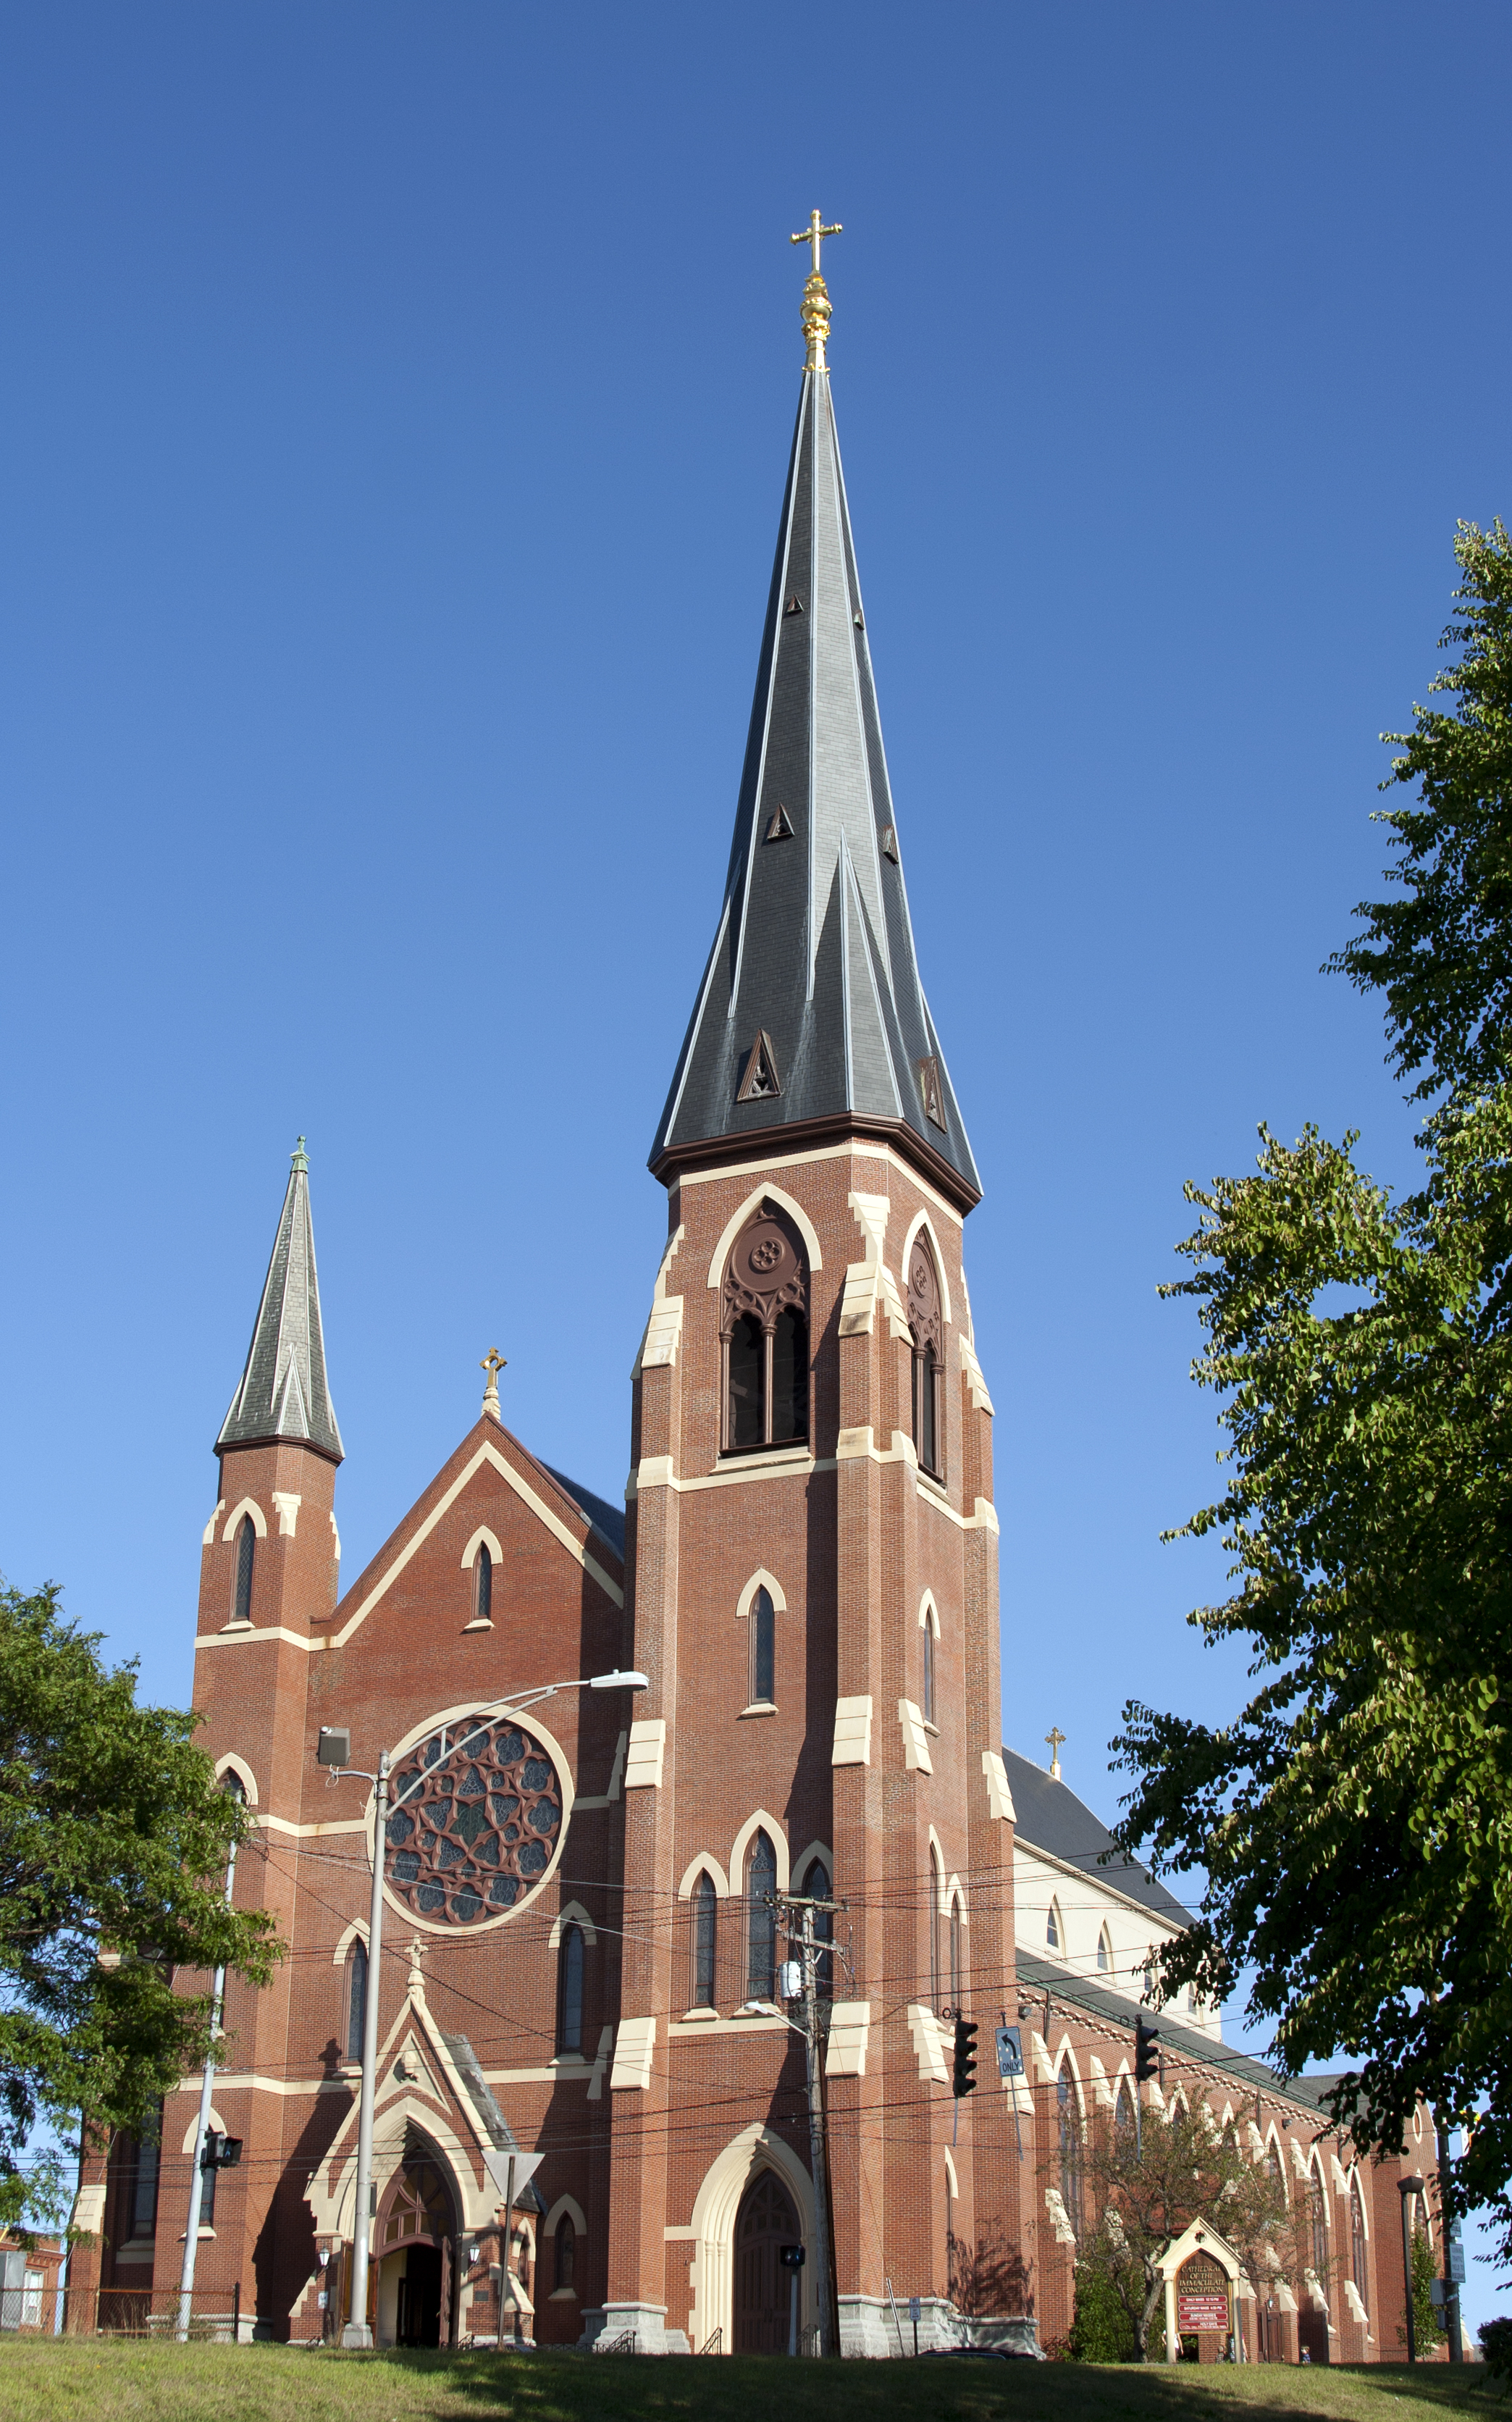 Photograph of the Exterior of the Cathedral, by Richard Diekema of Wikimedia Commons